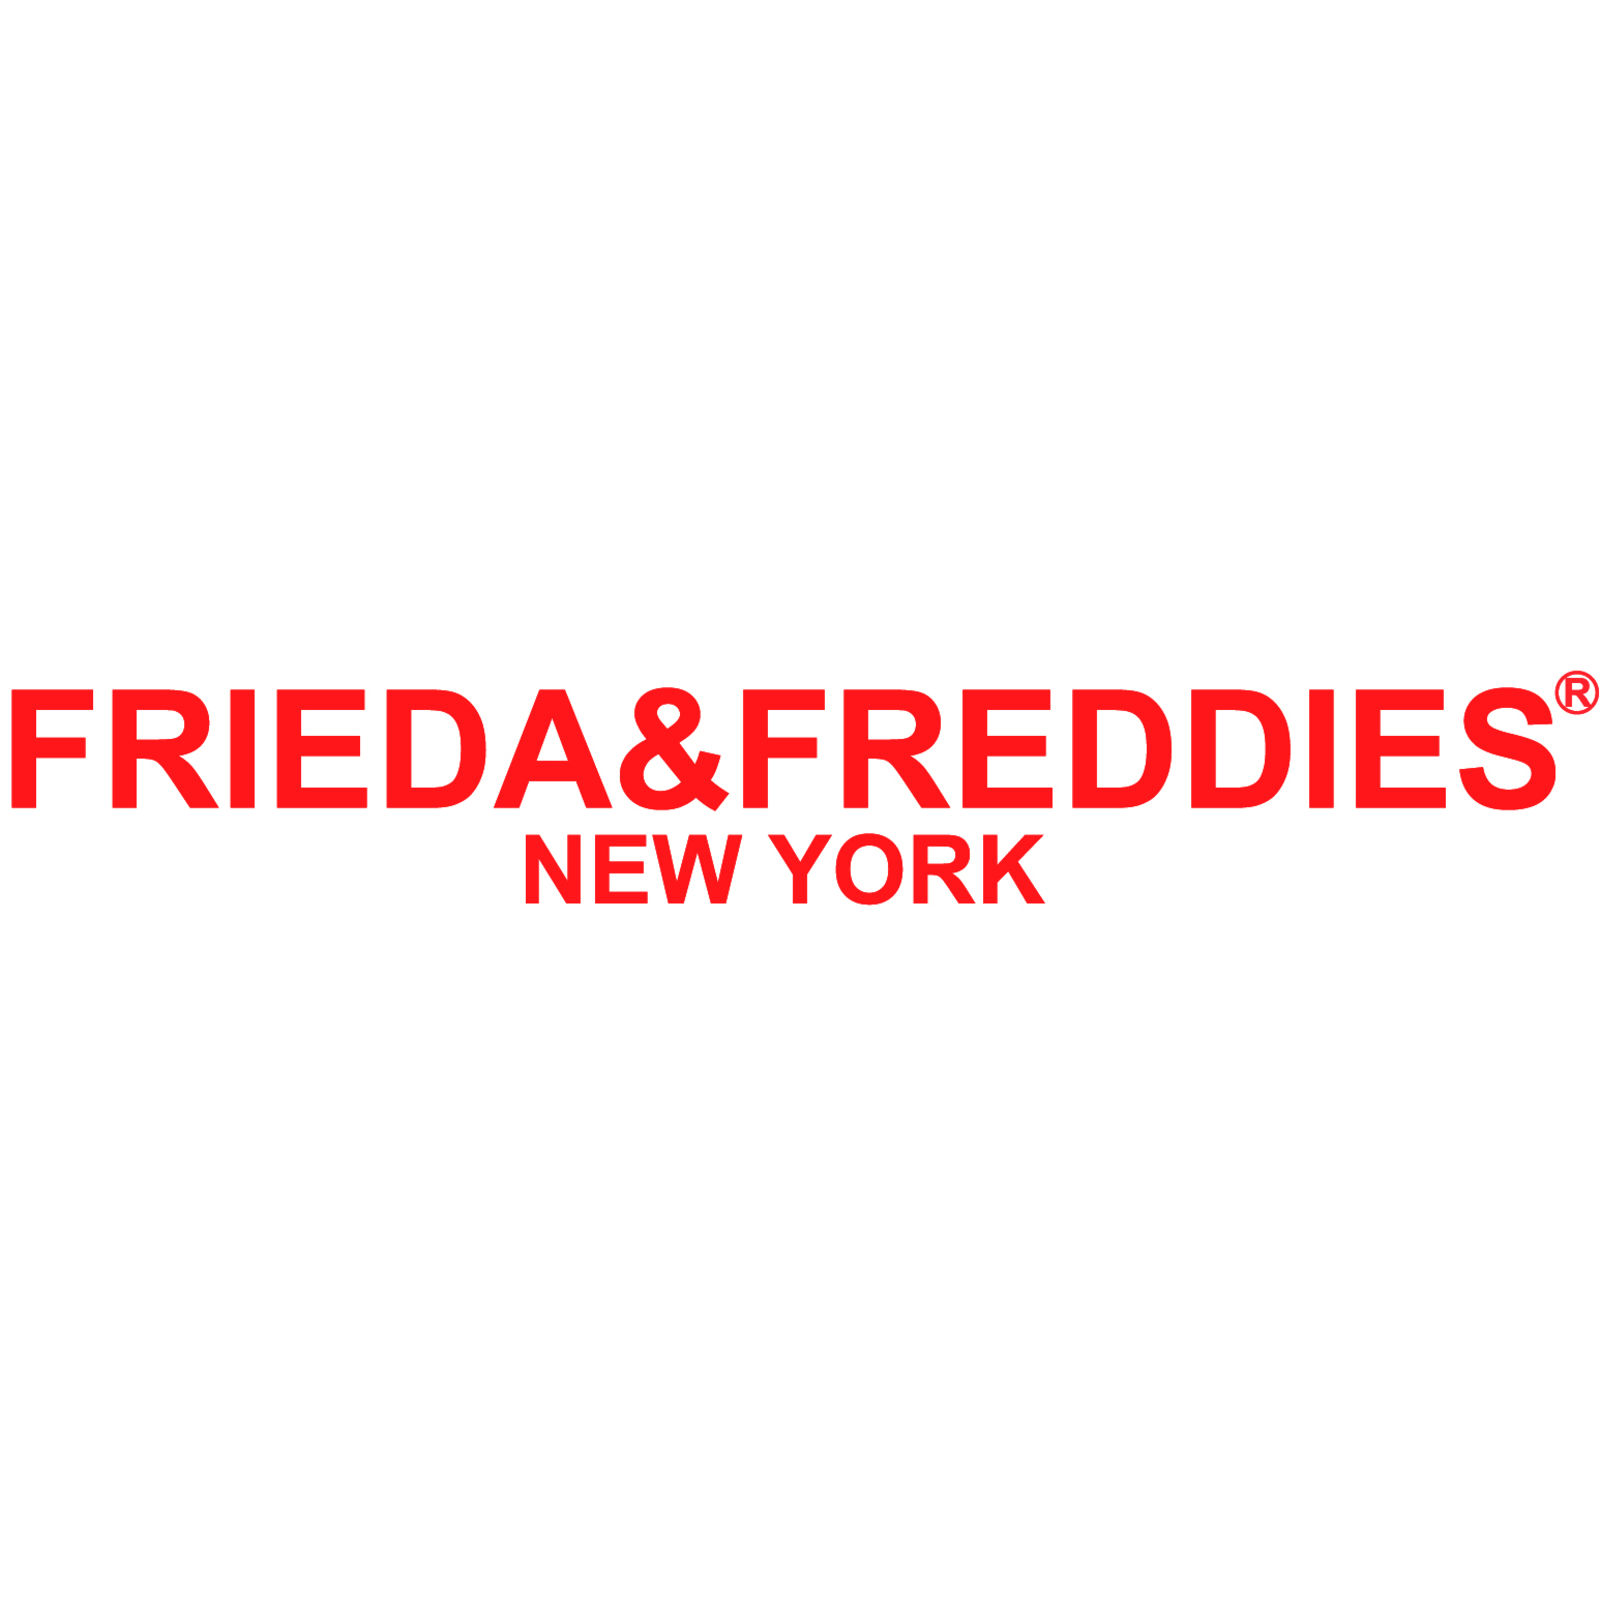 FRIEDA & FREDDIES® (Bild 1)